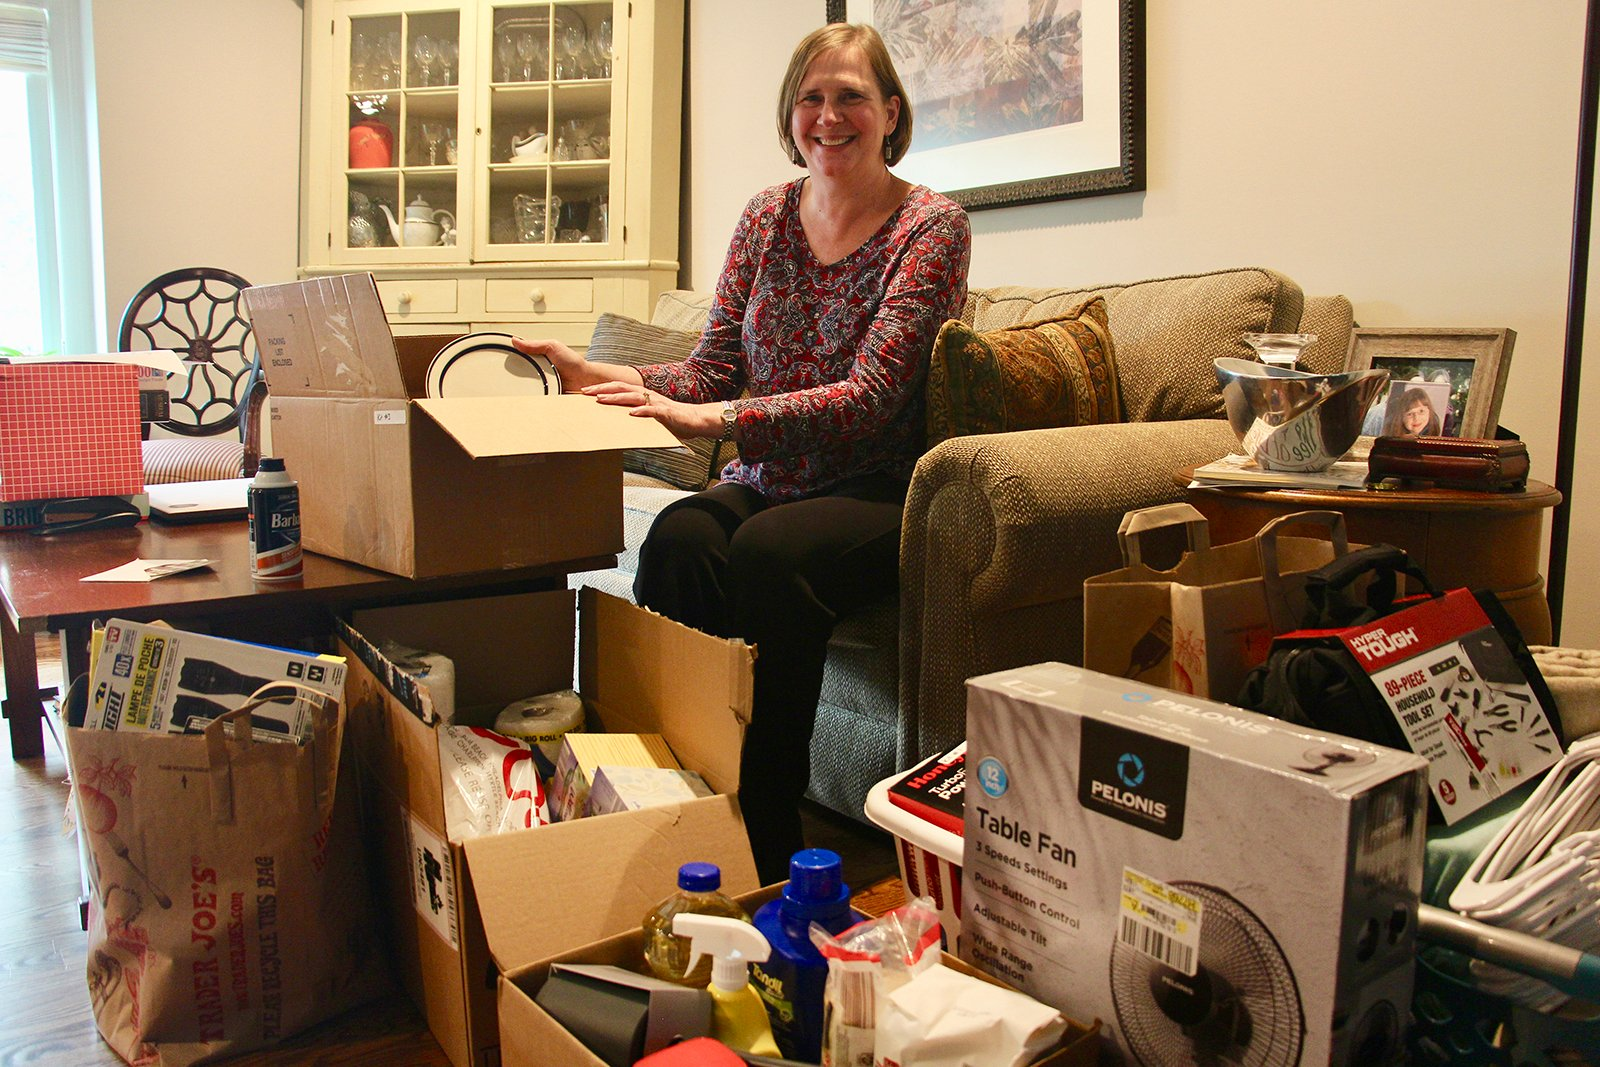 Amy Treier shows off donations for World Relief welcome kits collected by members of Immanuel Presbyterian Church in Warrenville, Illinois, stored at her home in the Chicago suburbs on Sept. 23, 2021. RNS photo by Emily McFarlan Miller